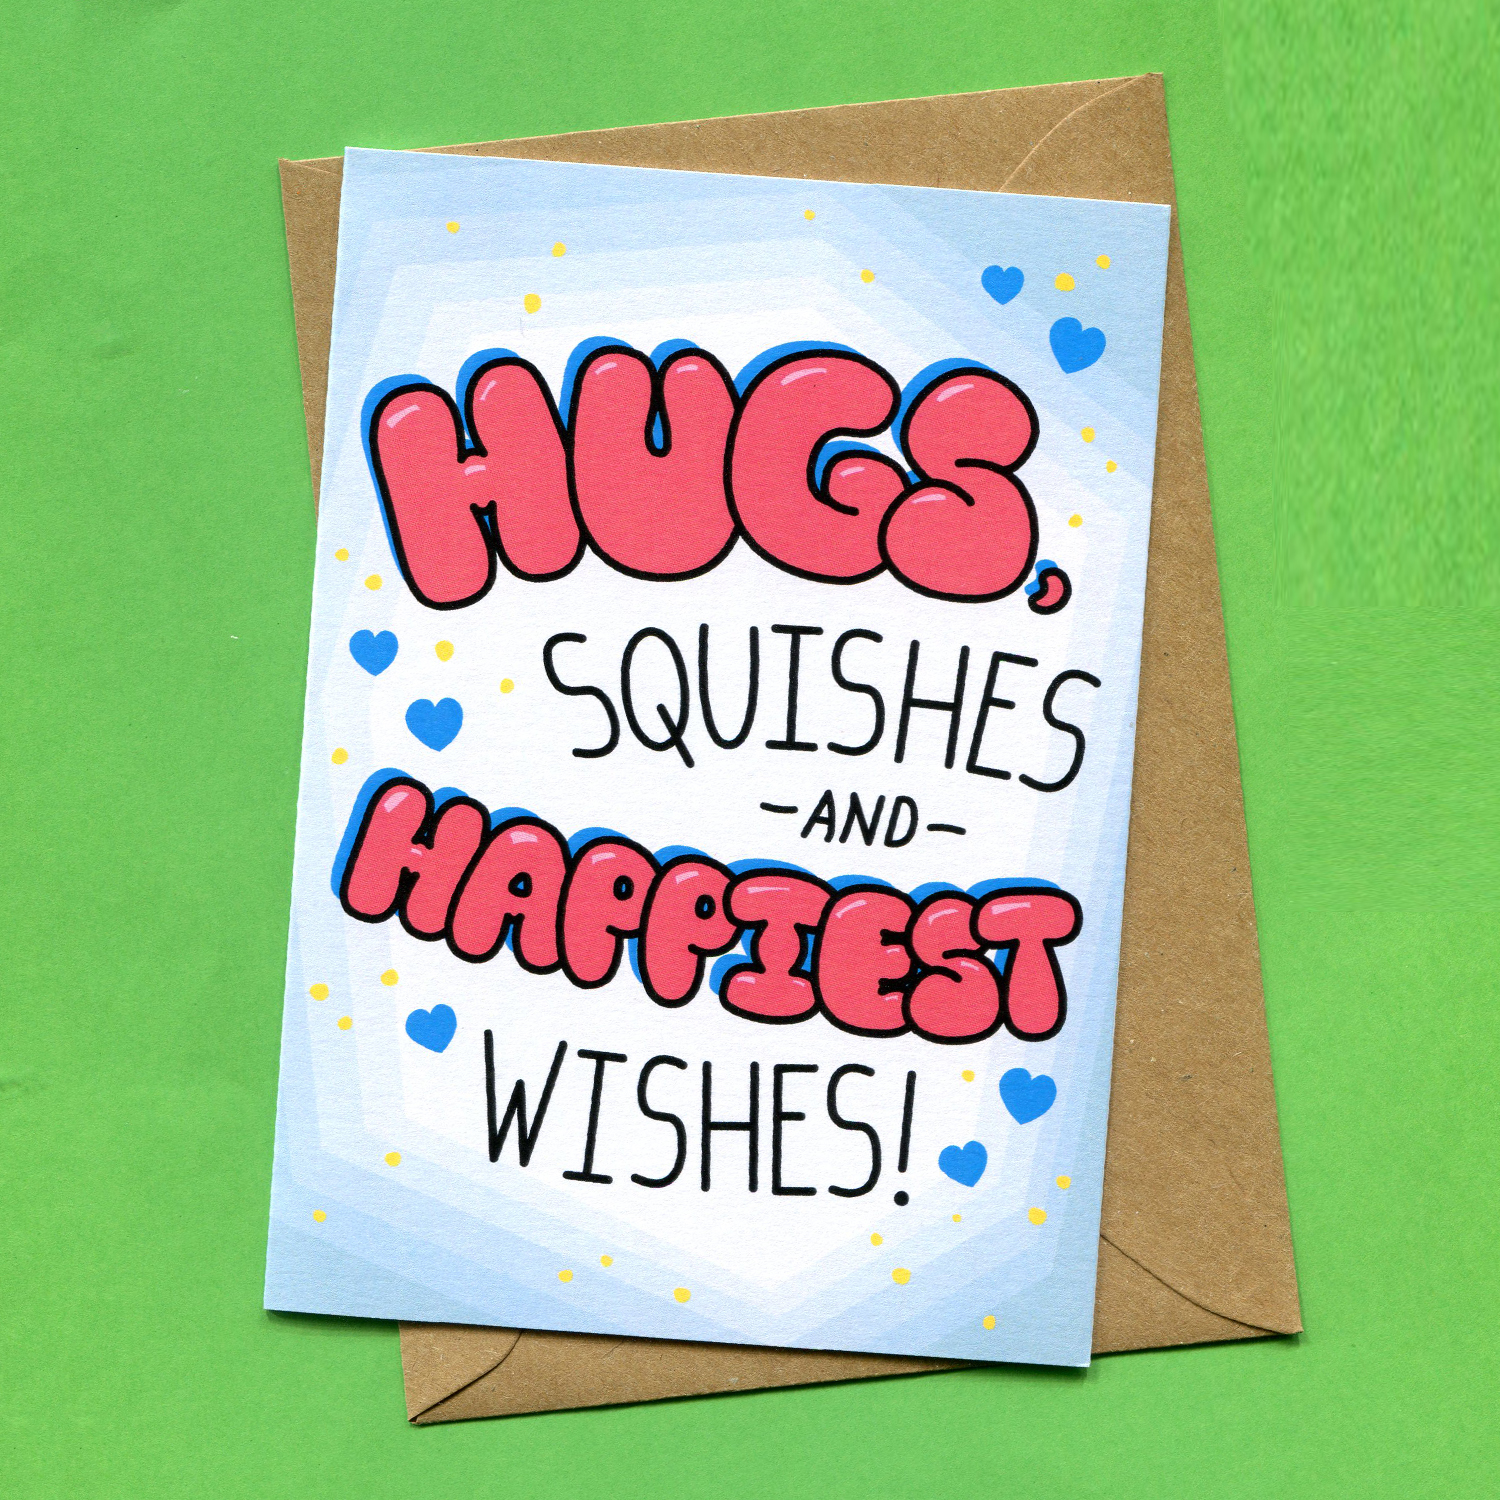 Catalogue_Things by Bean Hugs and Squishes and Happiest Wishes Greeting Card.jpg